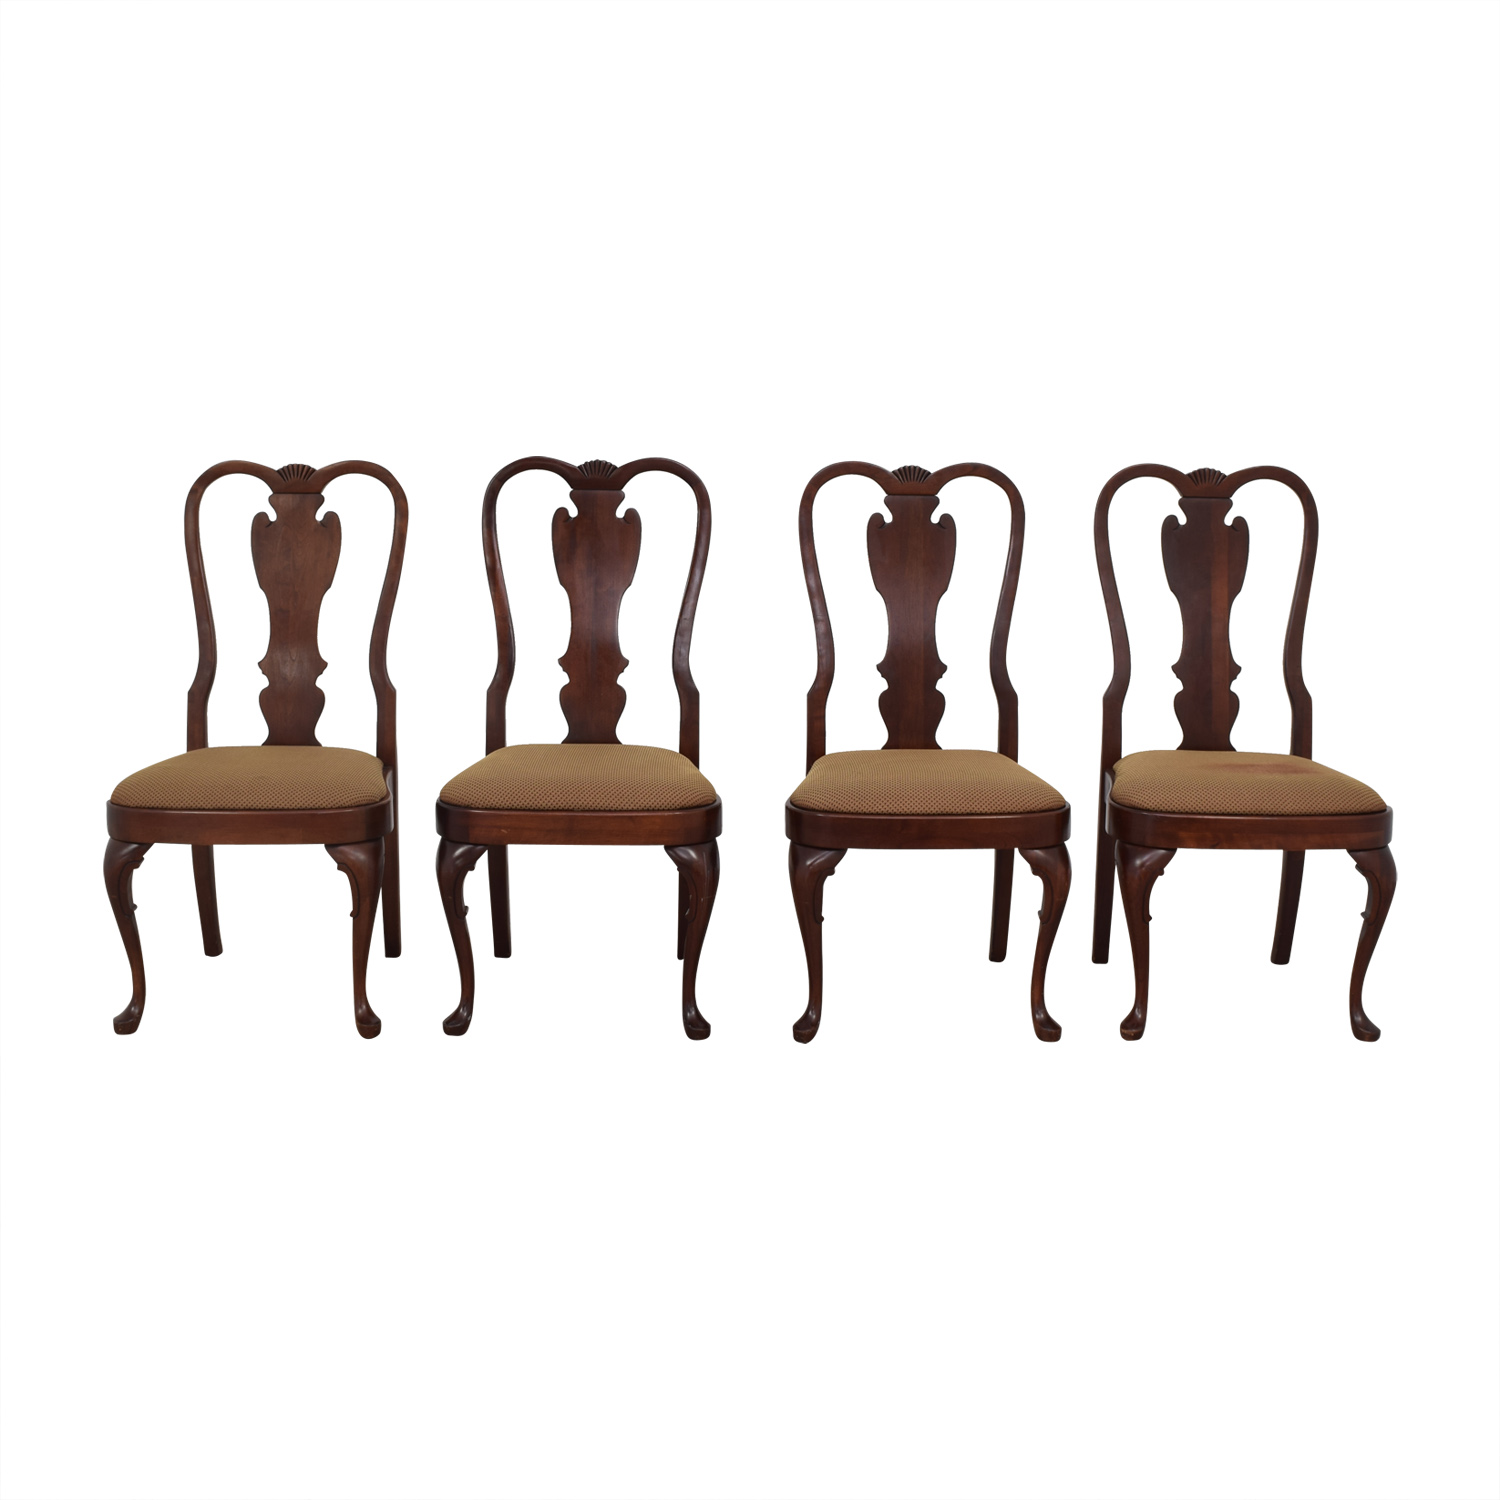 buy Pennsylvania House Dining Chairs Pennsylvania House Chairs